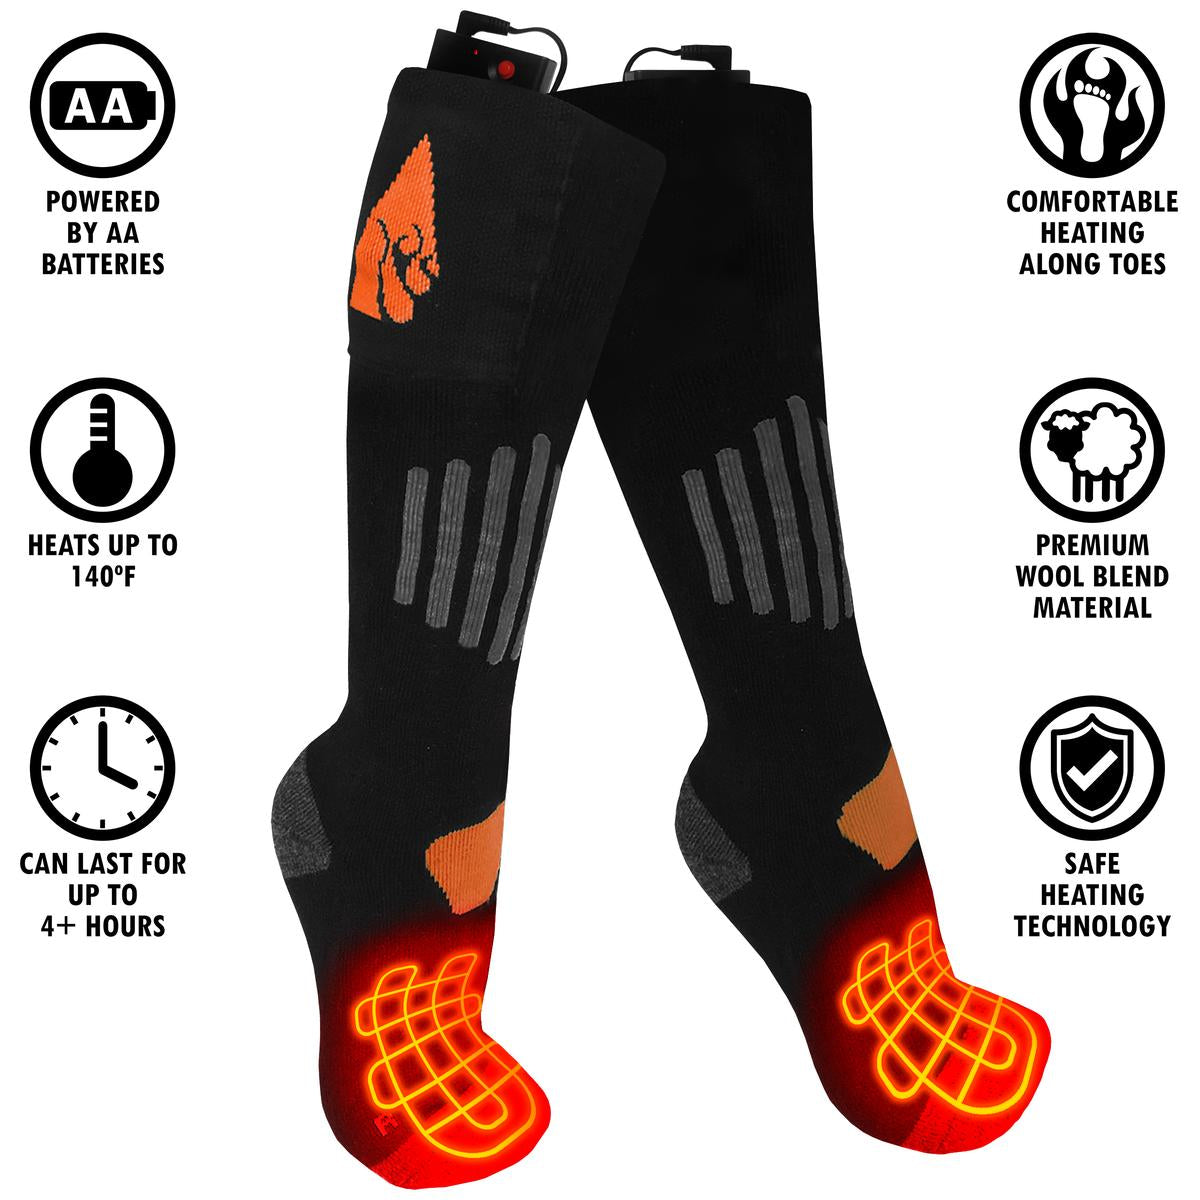 ActionHeat AA Battery Heated Socks - Wool - Info